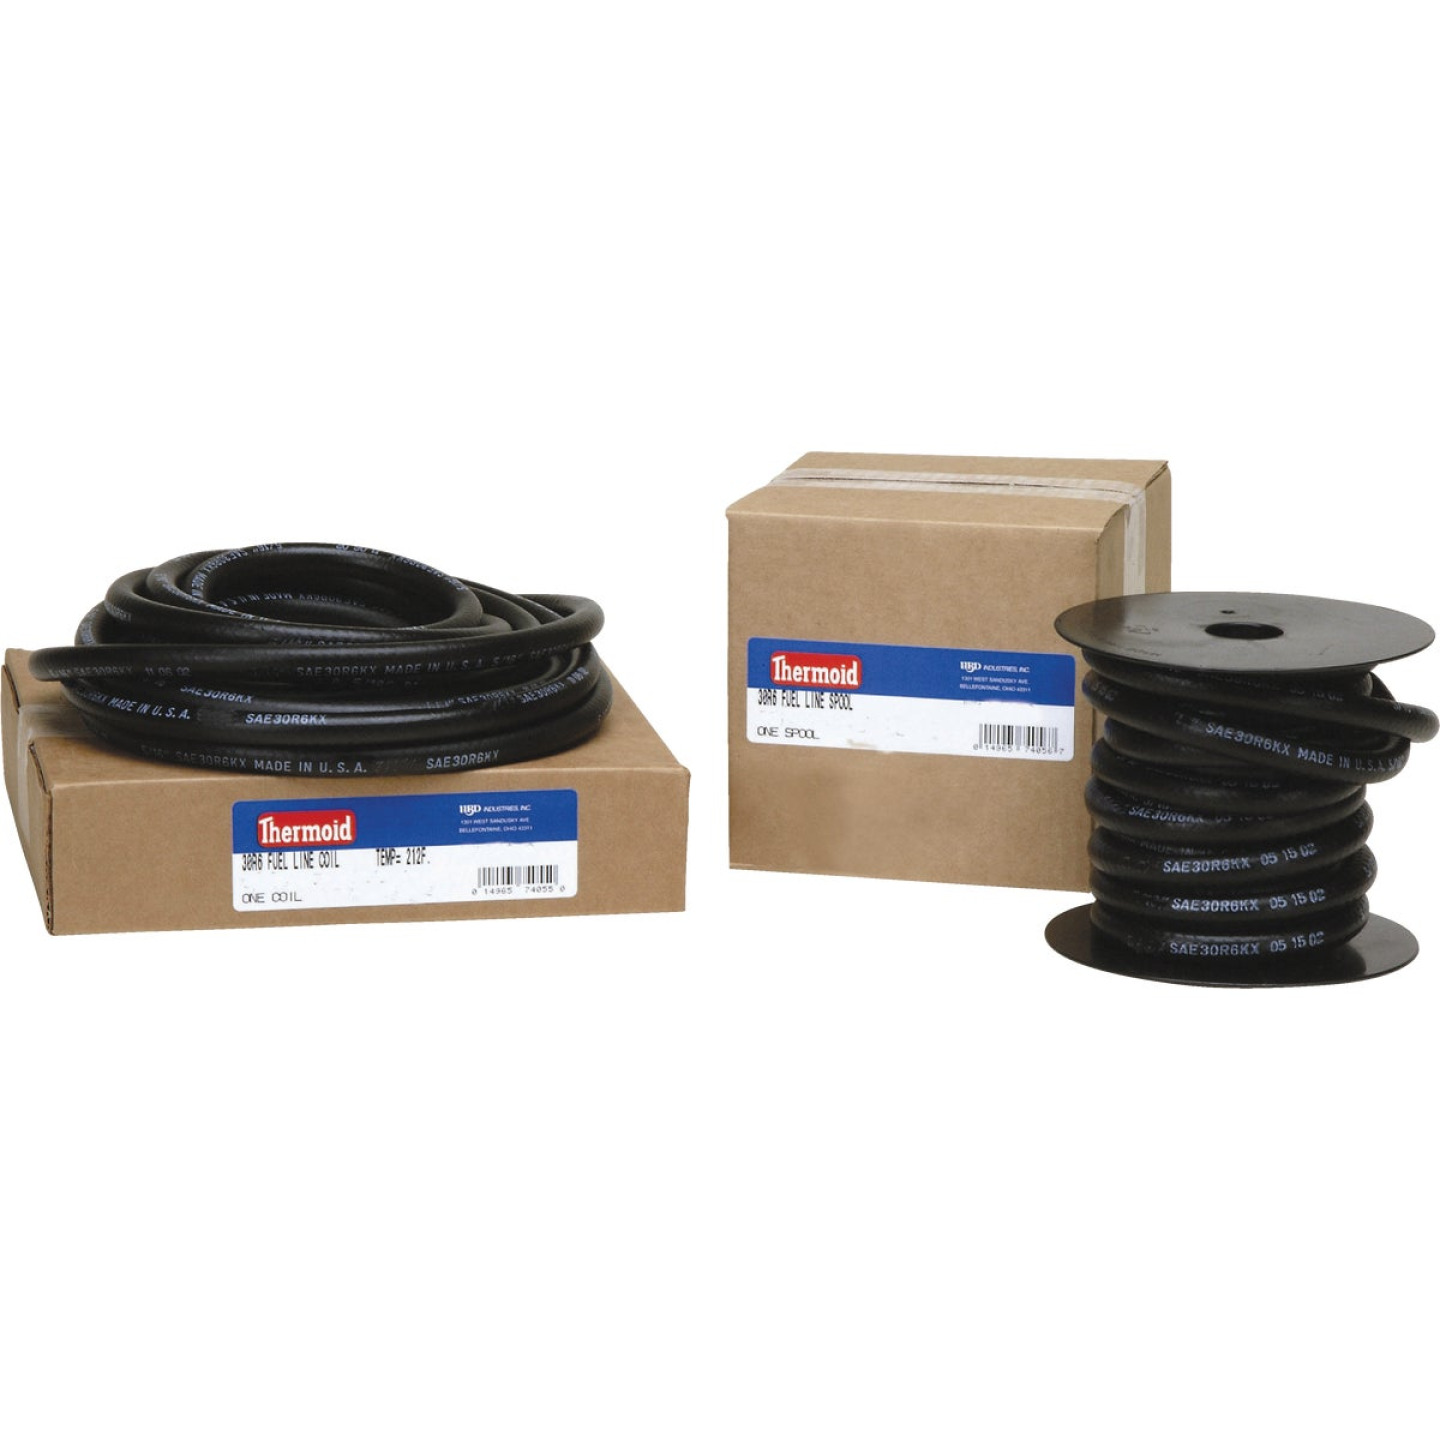 Thermoid 5/16 In. ID x 25 Ft. L. Bulk Fuel Line Hose Image 1